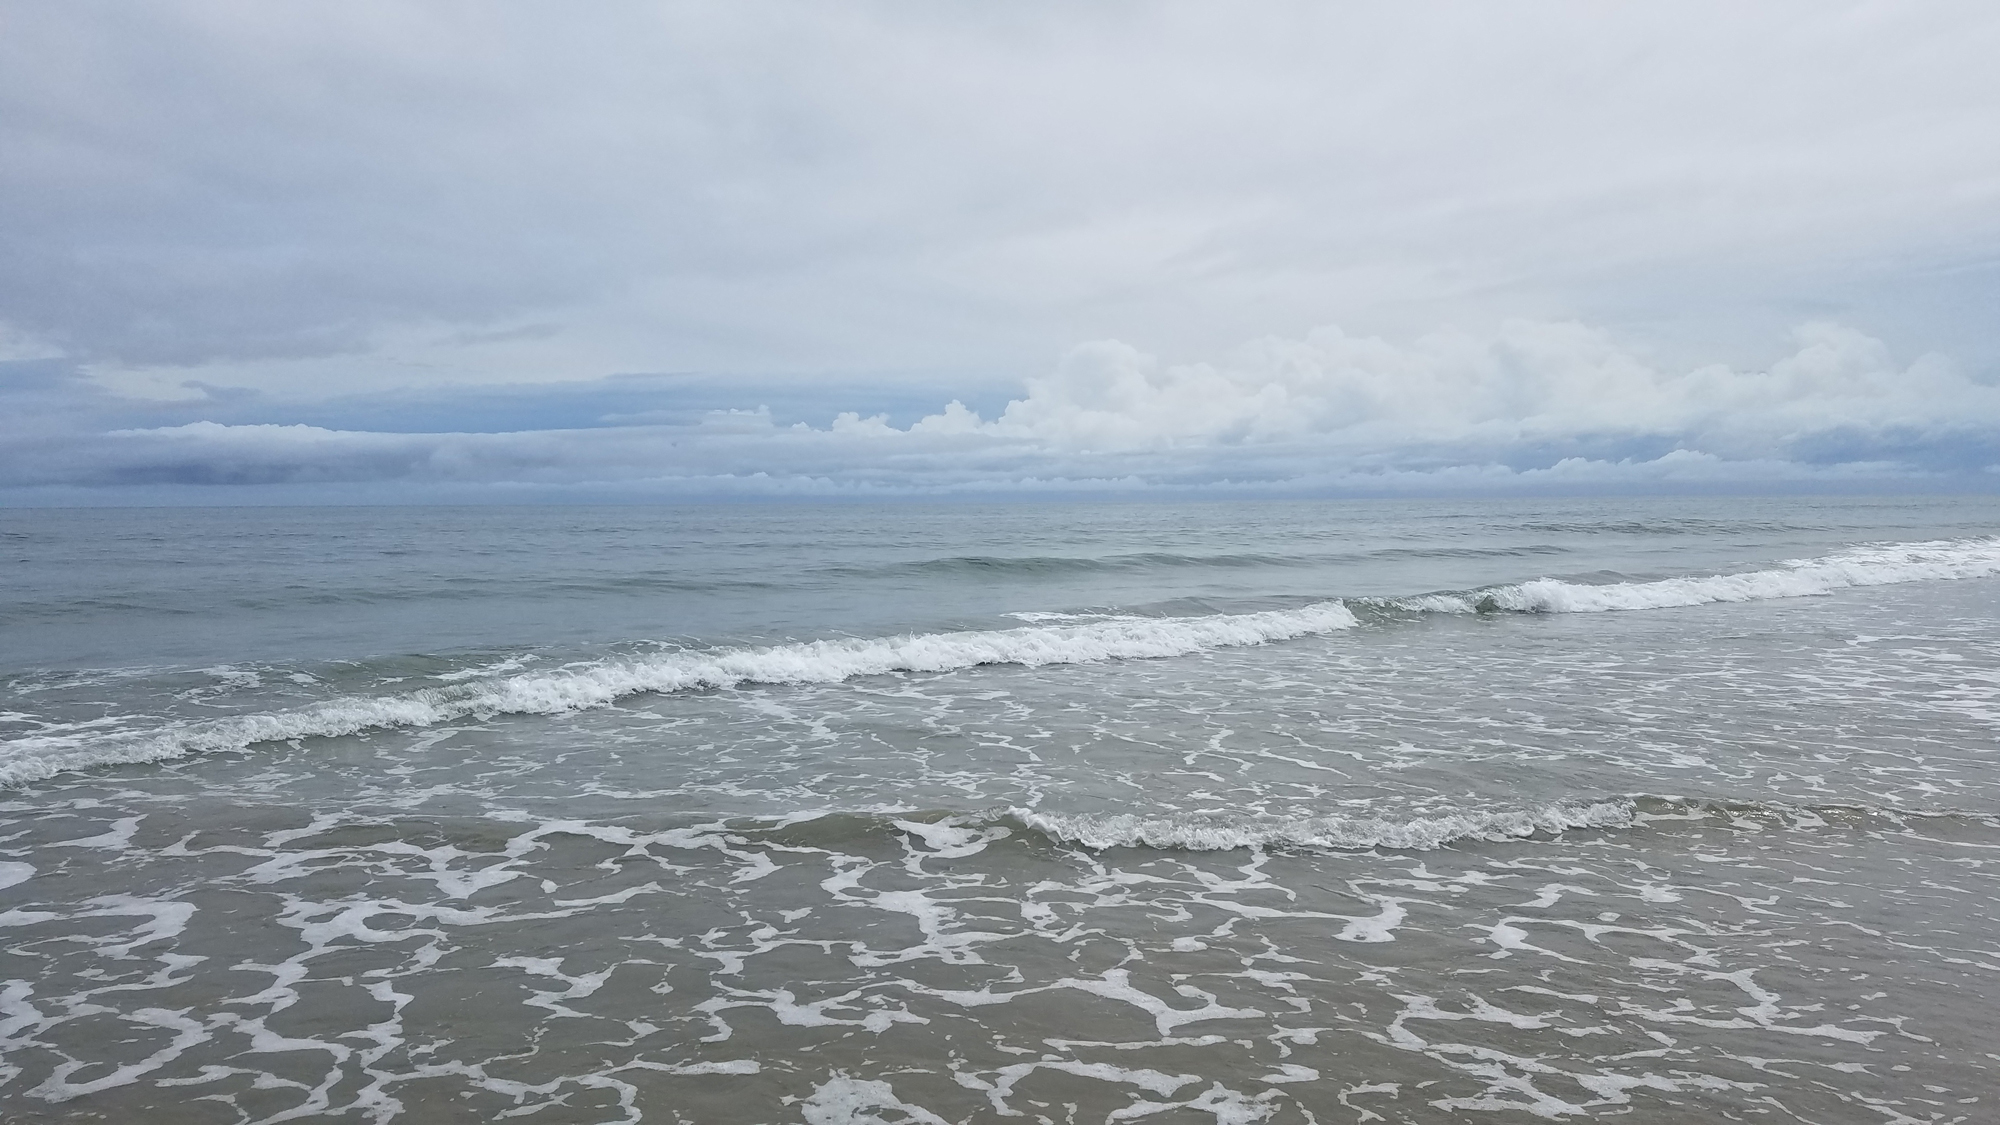 Ocean & backside of low pressure system / 18 Aug / Back Bay NWR